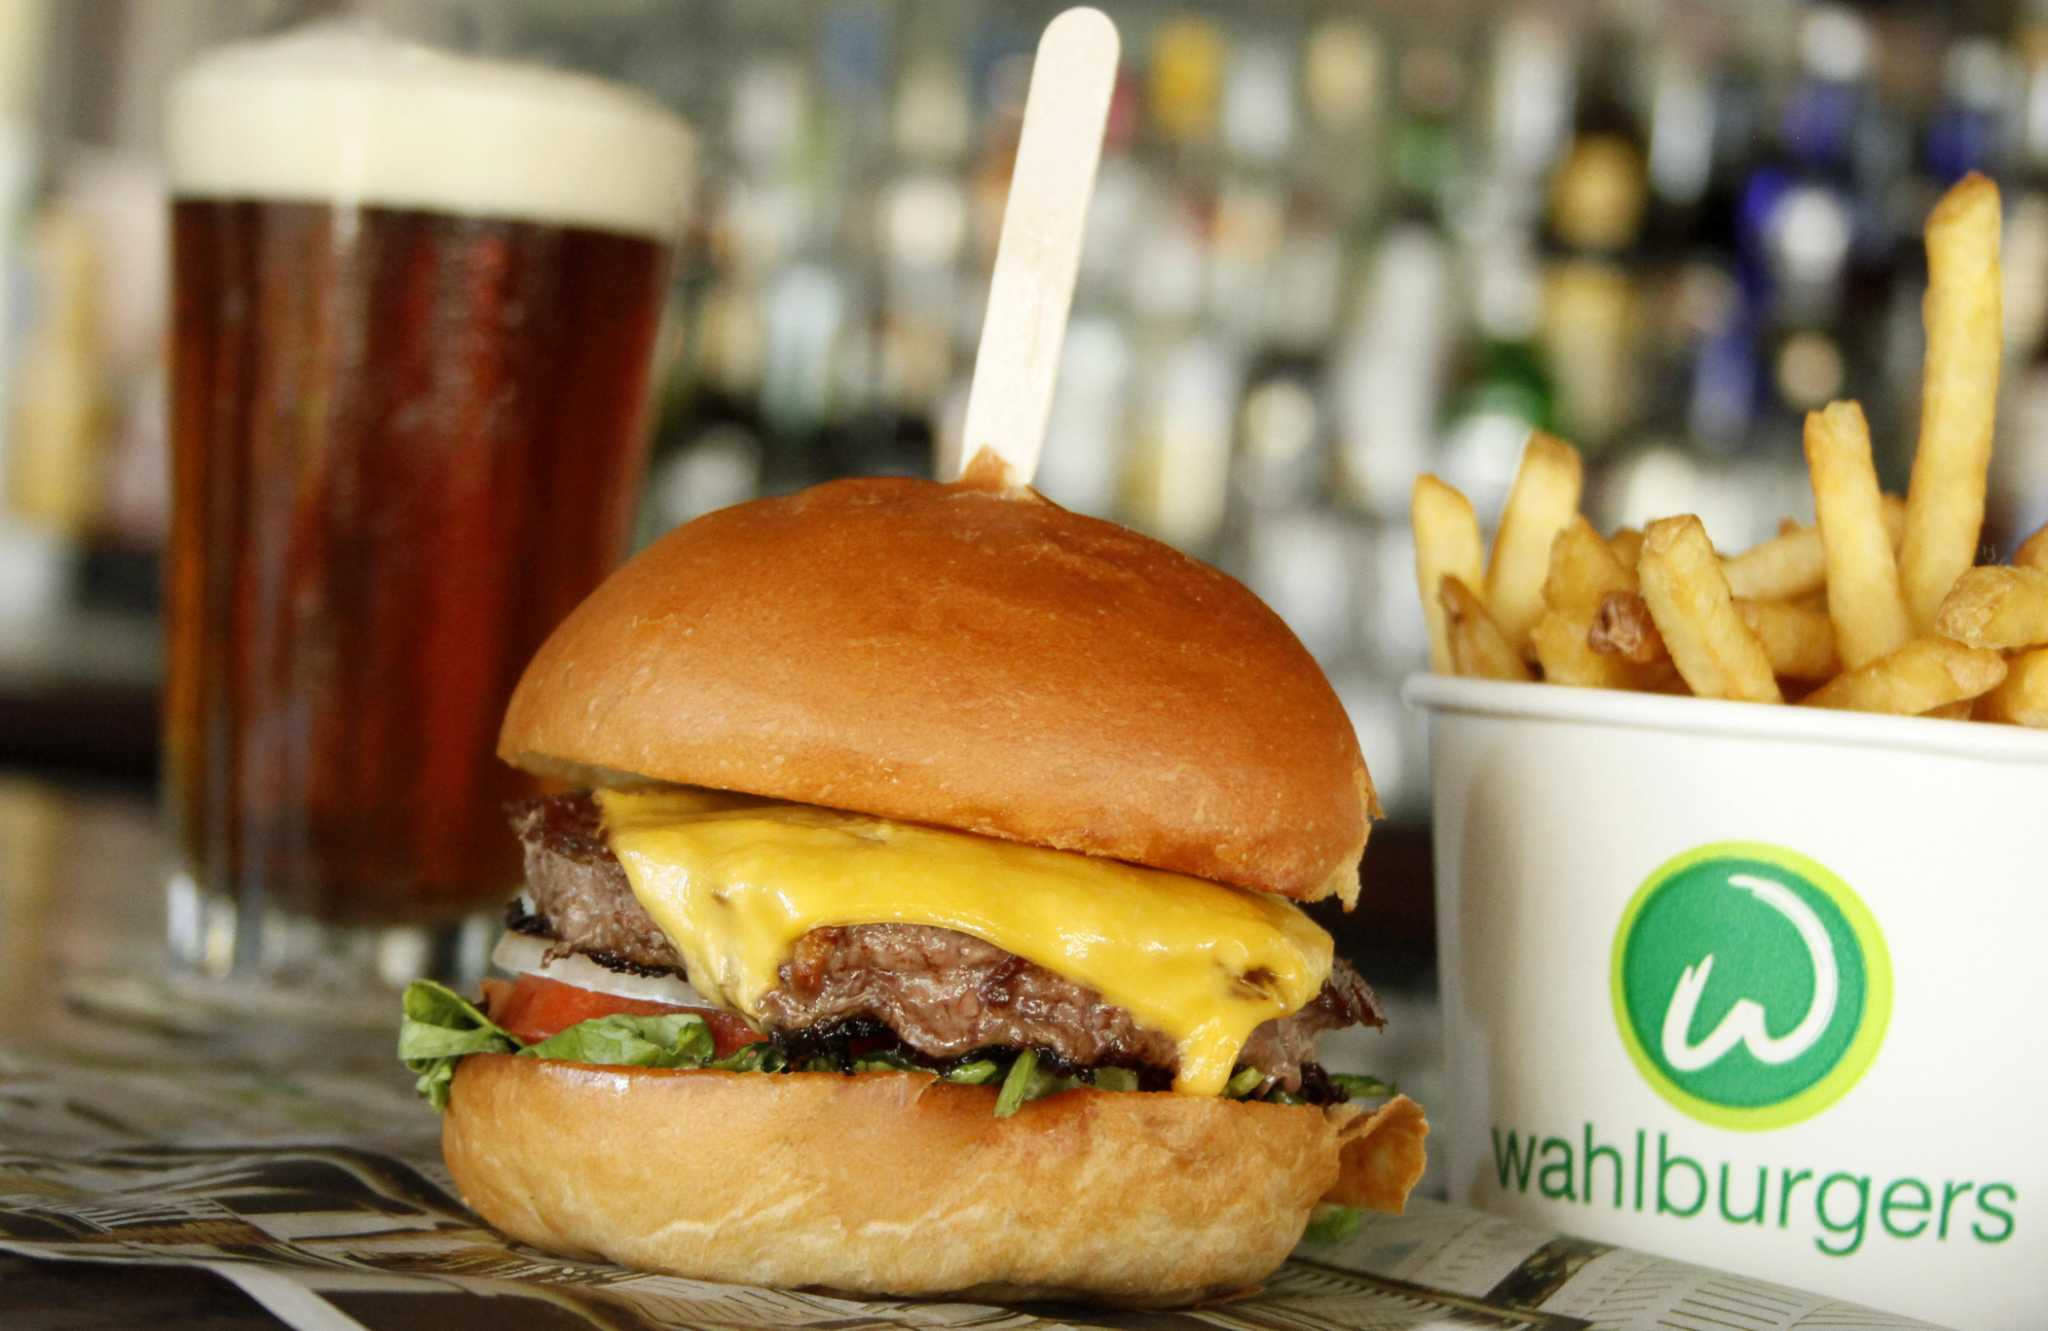 After closing its only Connecticut location, Wahlburgers opens at MGM Springfield